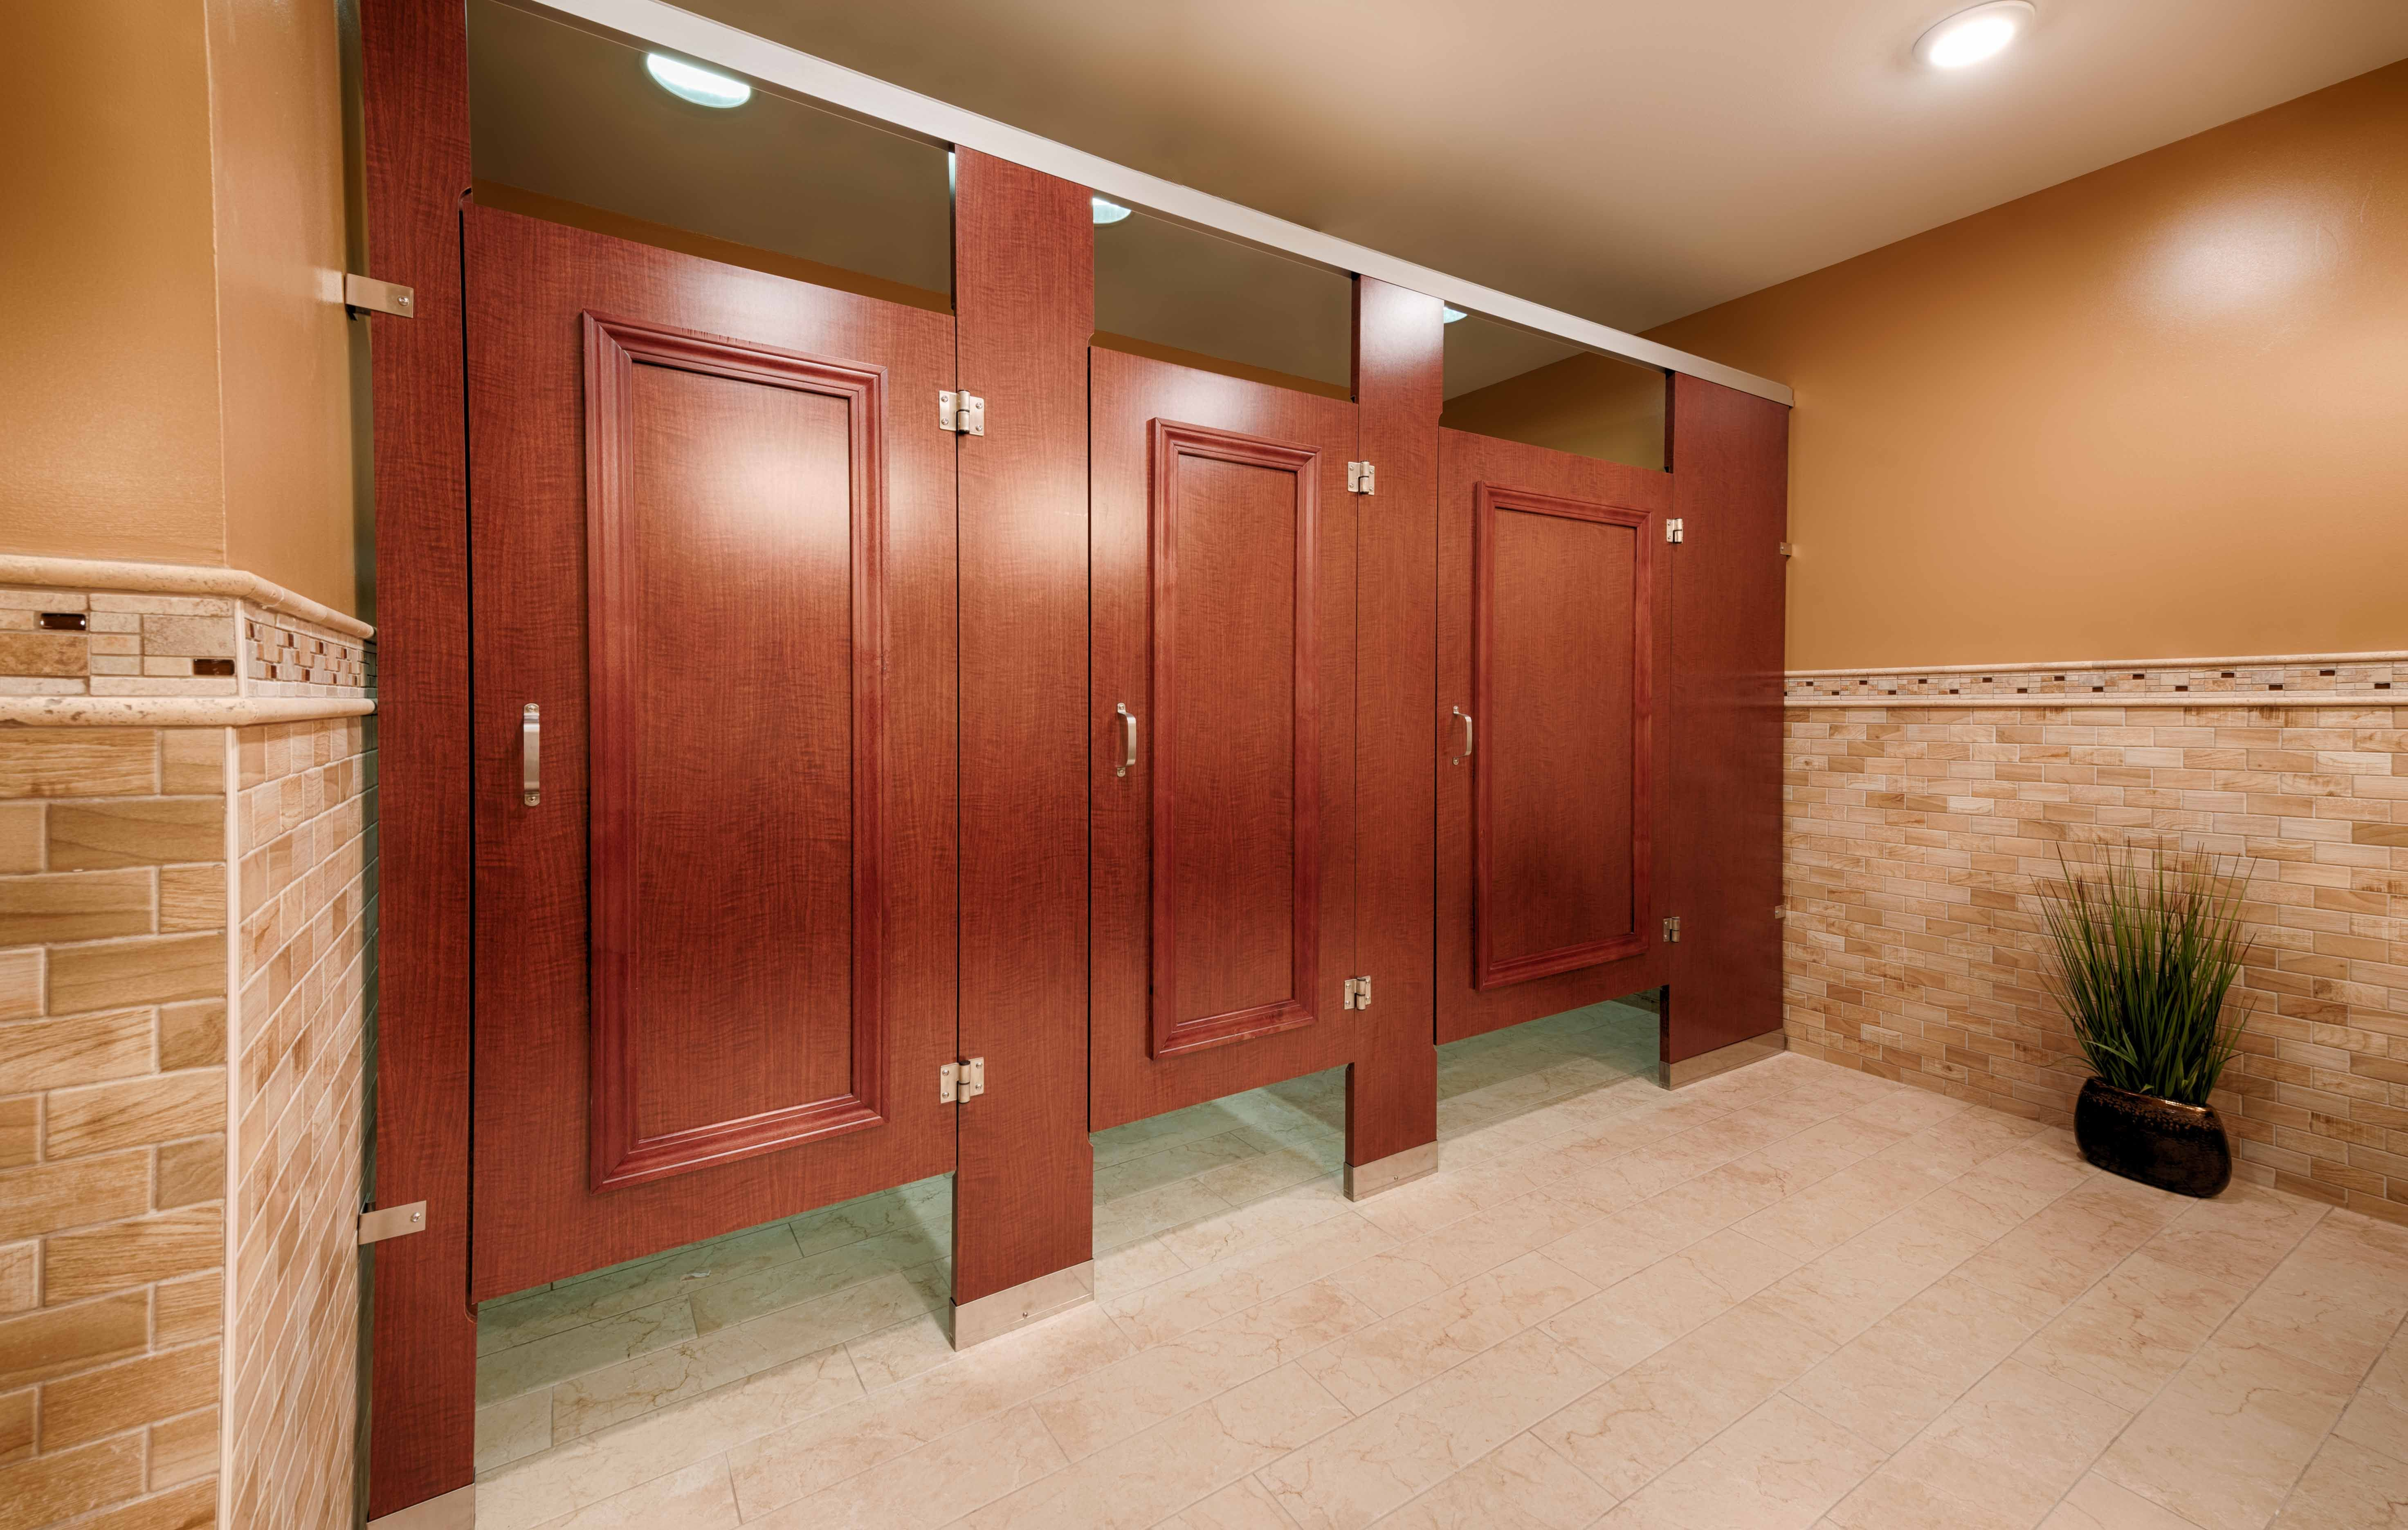 Ironwood Manufacturing Laminate Toilet Partition With Molding - Bathroom privacy partitions